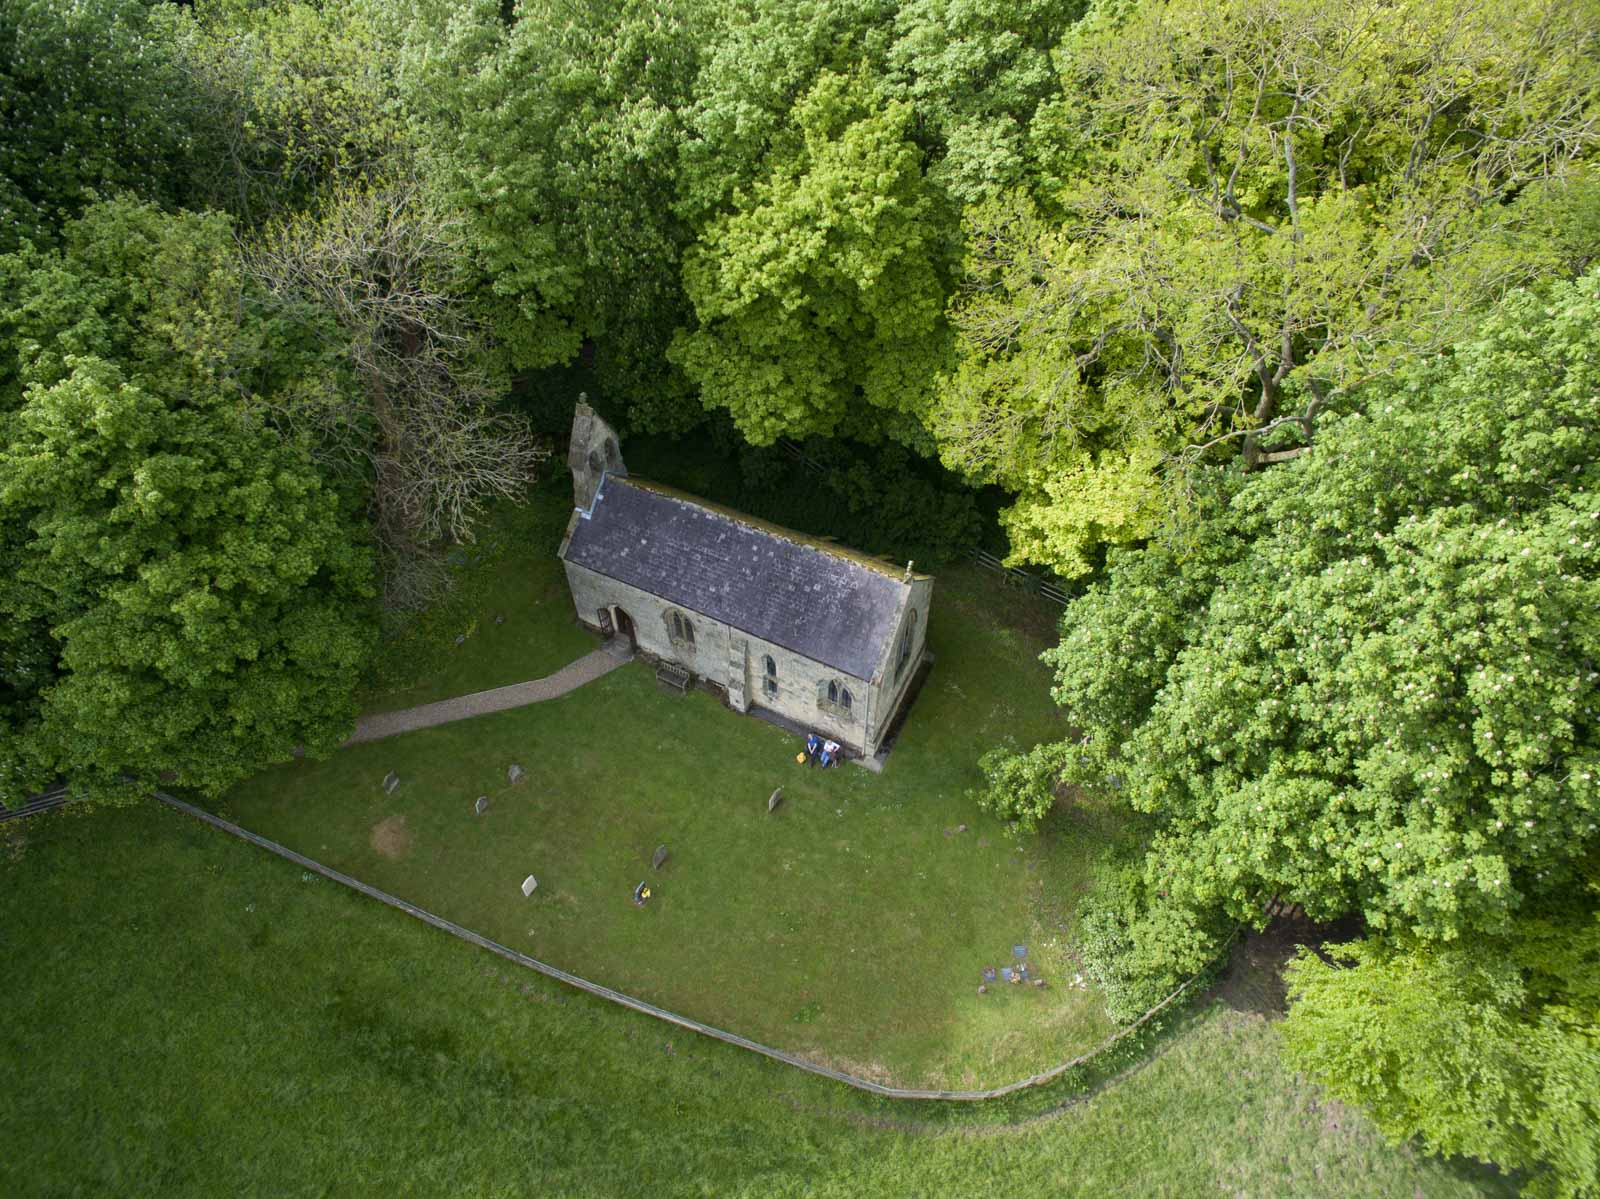 drone photo tips